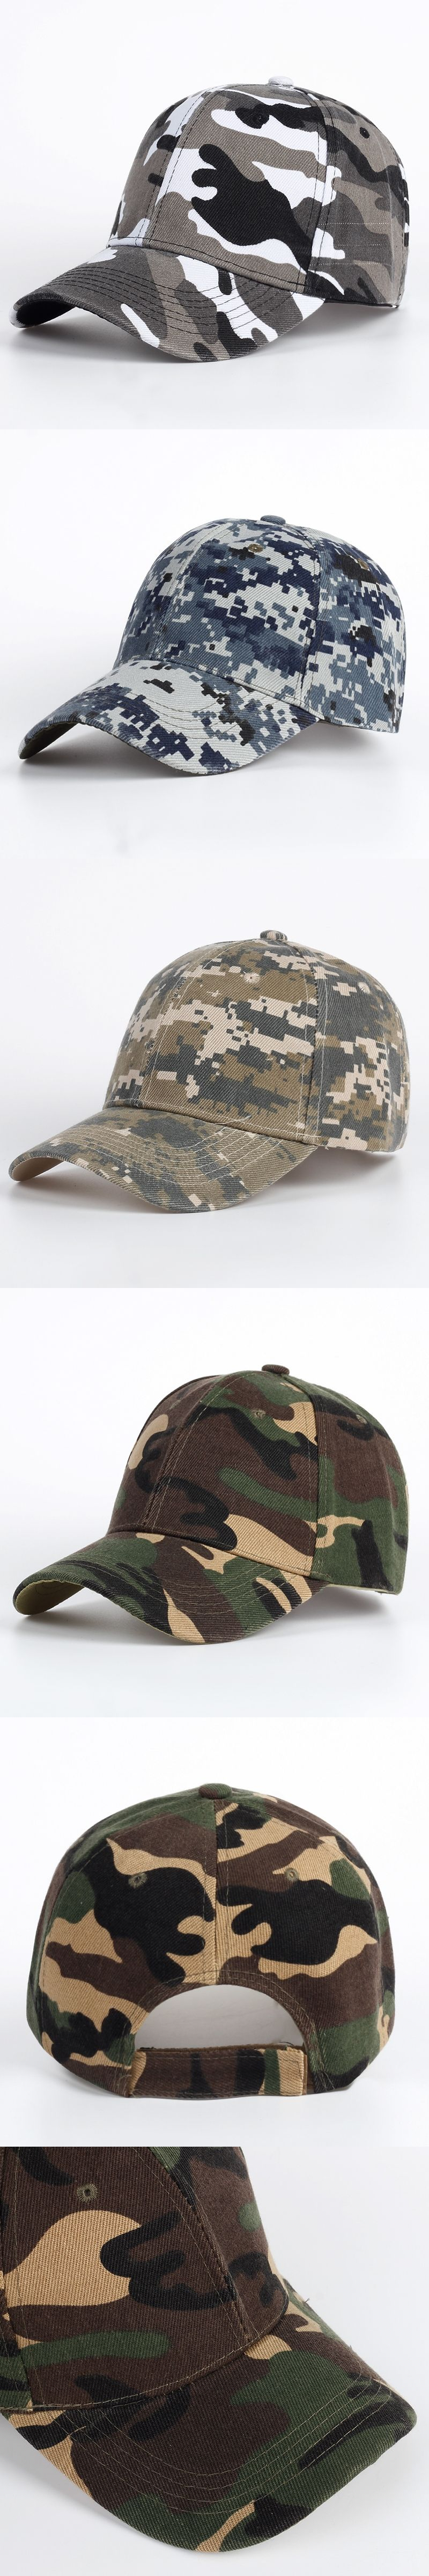 5456384e880 TUNICA Brand 100% cotton Fitted Hat Baseball Cap Casual Army Camouflage  Outdoor Sports Snapback Gorras